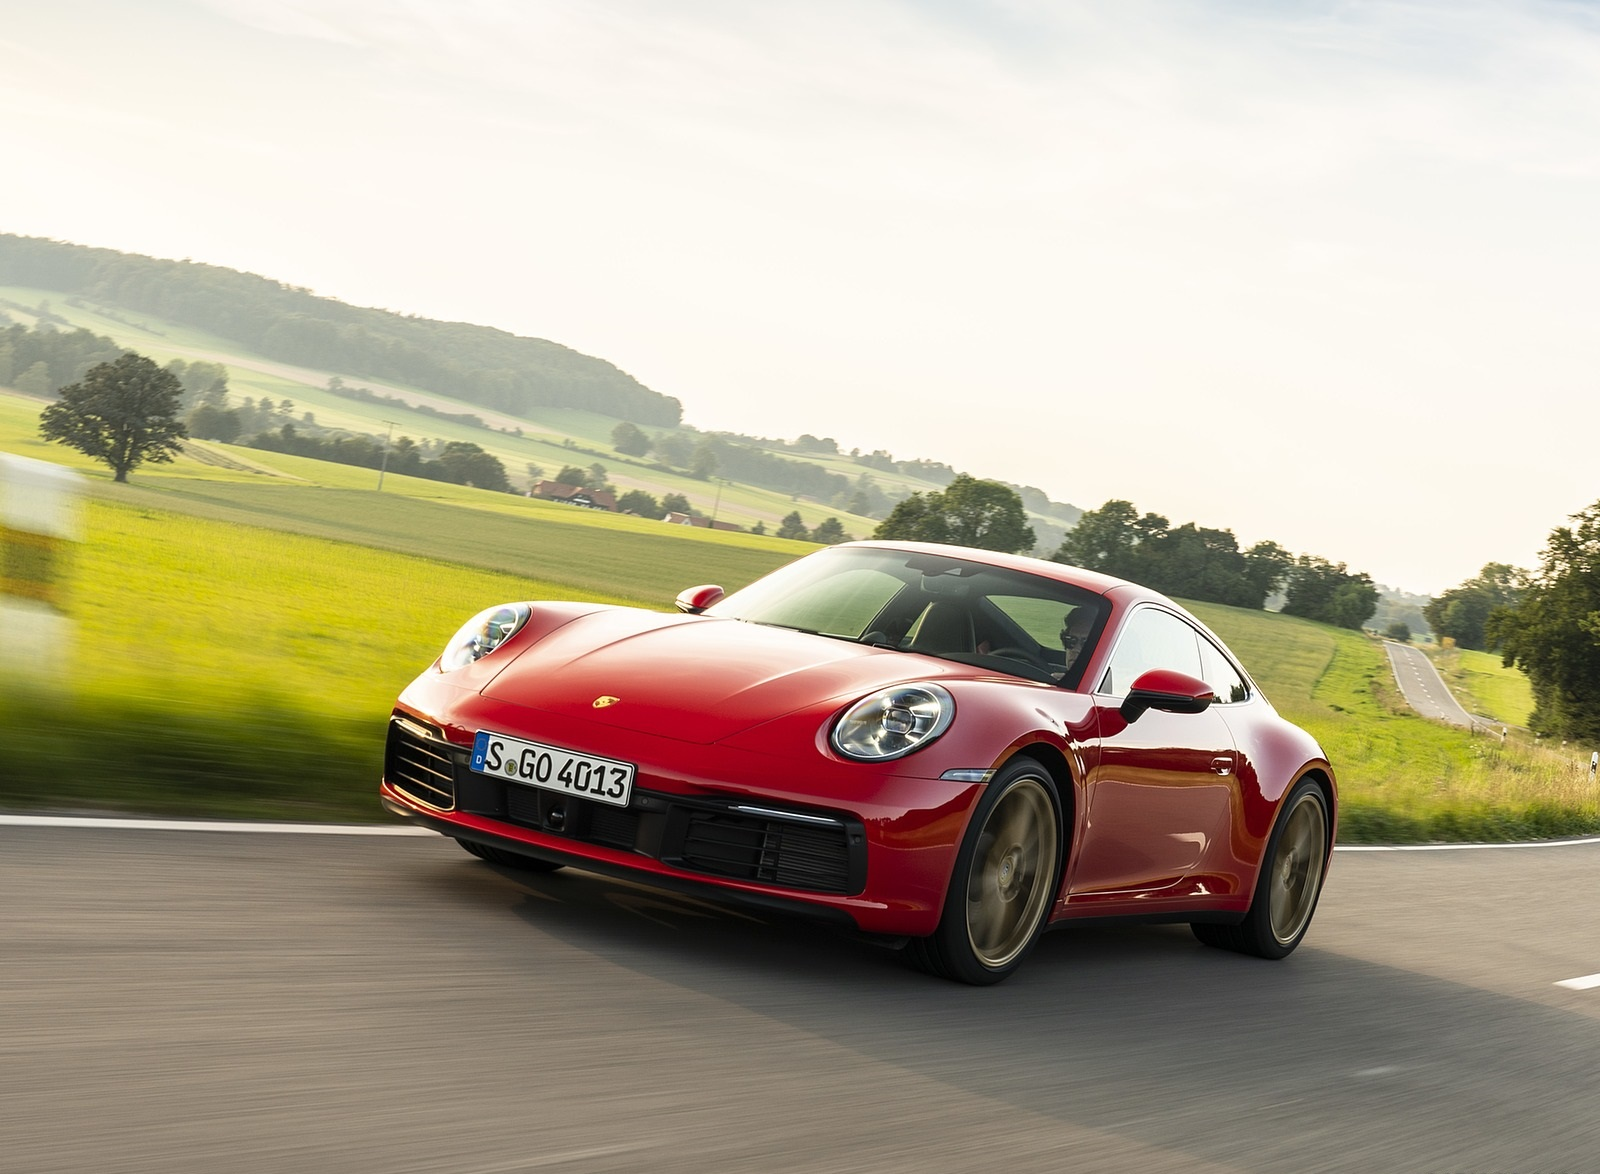 2020 Porsche 911 Carrera Coupe Wallpapers 126 HD Images 1600x1174